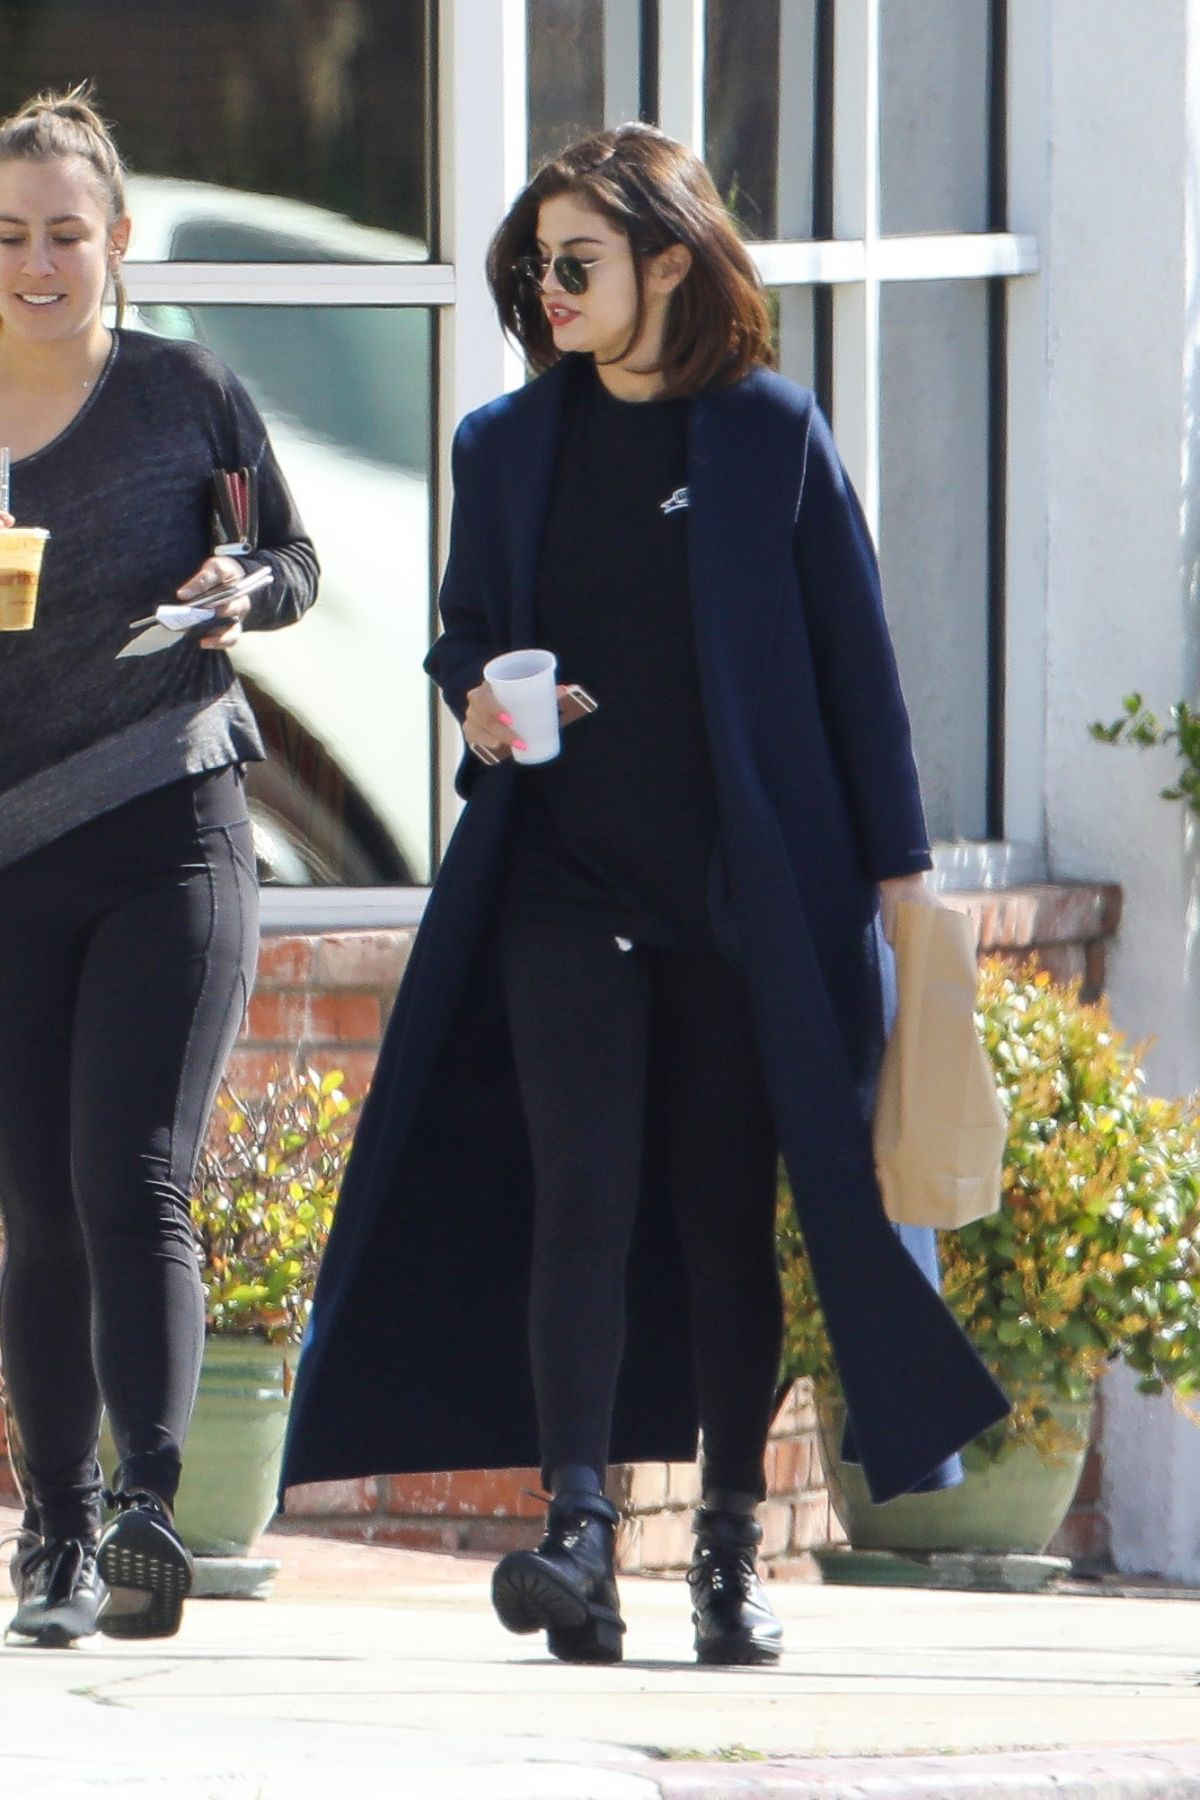 SELENA GOMEZ Out and About in Los Angeles 03/07/2017